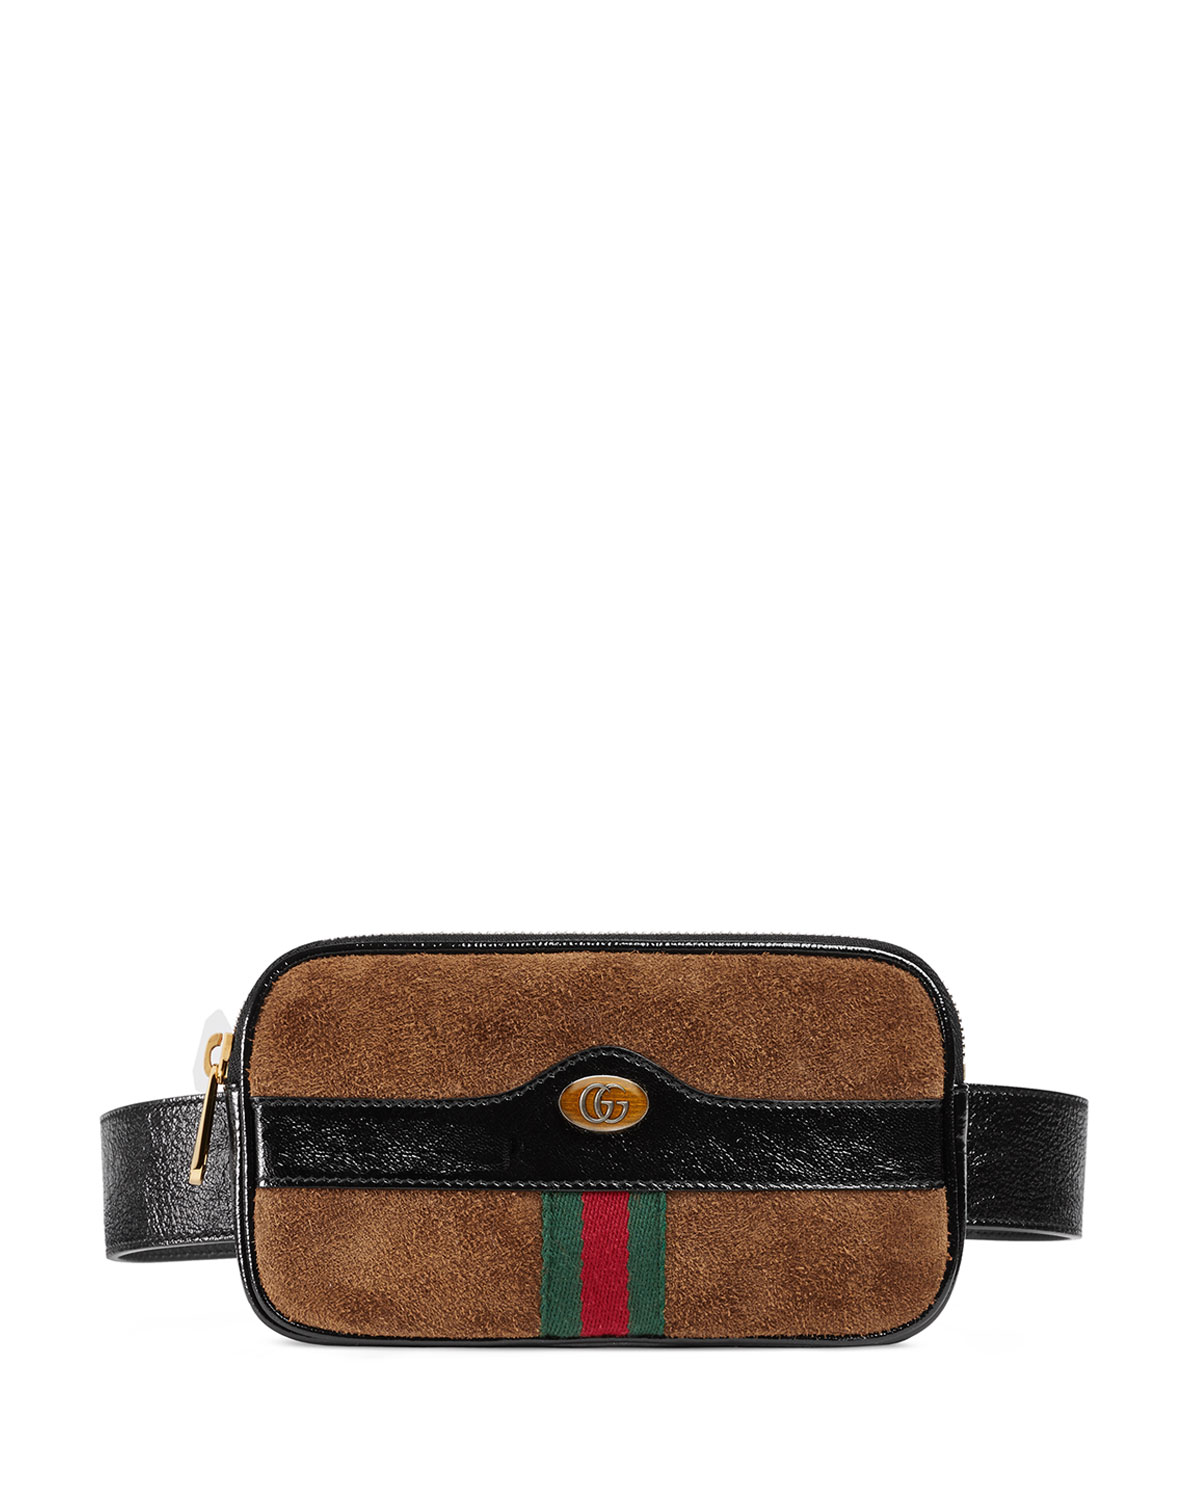 Gucci Ophidia Mini Suede Phone Belt Bag   Neiman Marcus 6fe4ab0aed